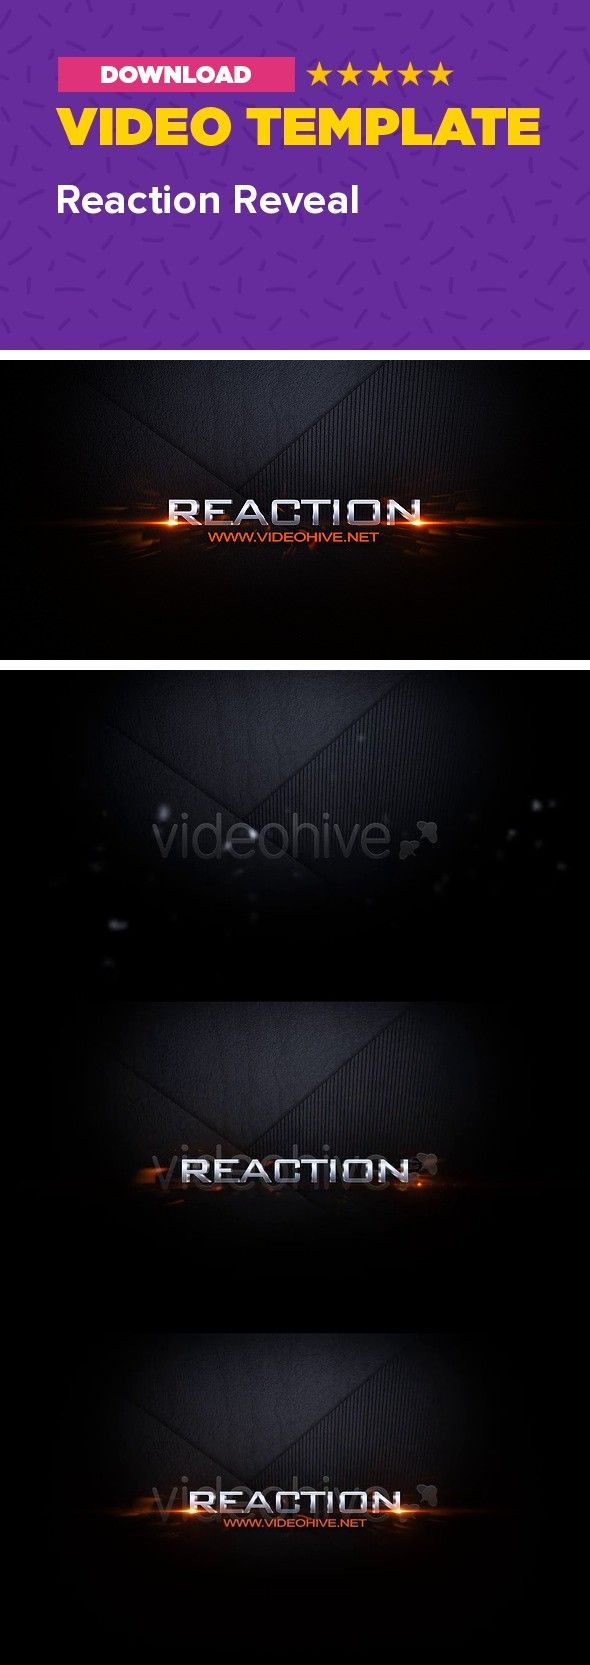 dark, distortion, formation, hi tech, logo, logo distortion, logo formation, logo intro, logo pieces, logo reveal, opener, pieces, shatter, text, tv noise Glitchy Logo or text reveal. High quality After Effects template.   	Main features: Compatible with After Effects CS3 ->CC 2017 Full HD 1920×1080 px resolution No plugins required  Very easy editing. Help file included. For soundtrack info contact me through my profile page. Also available without the metallic finish, so you can add yo...